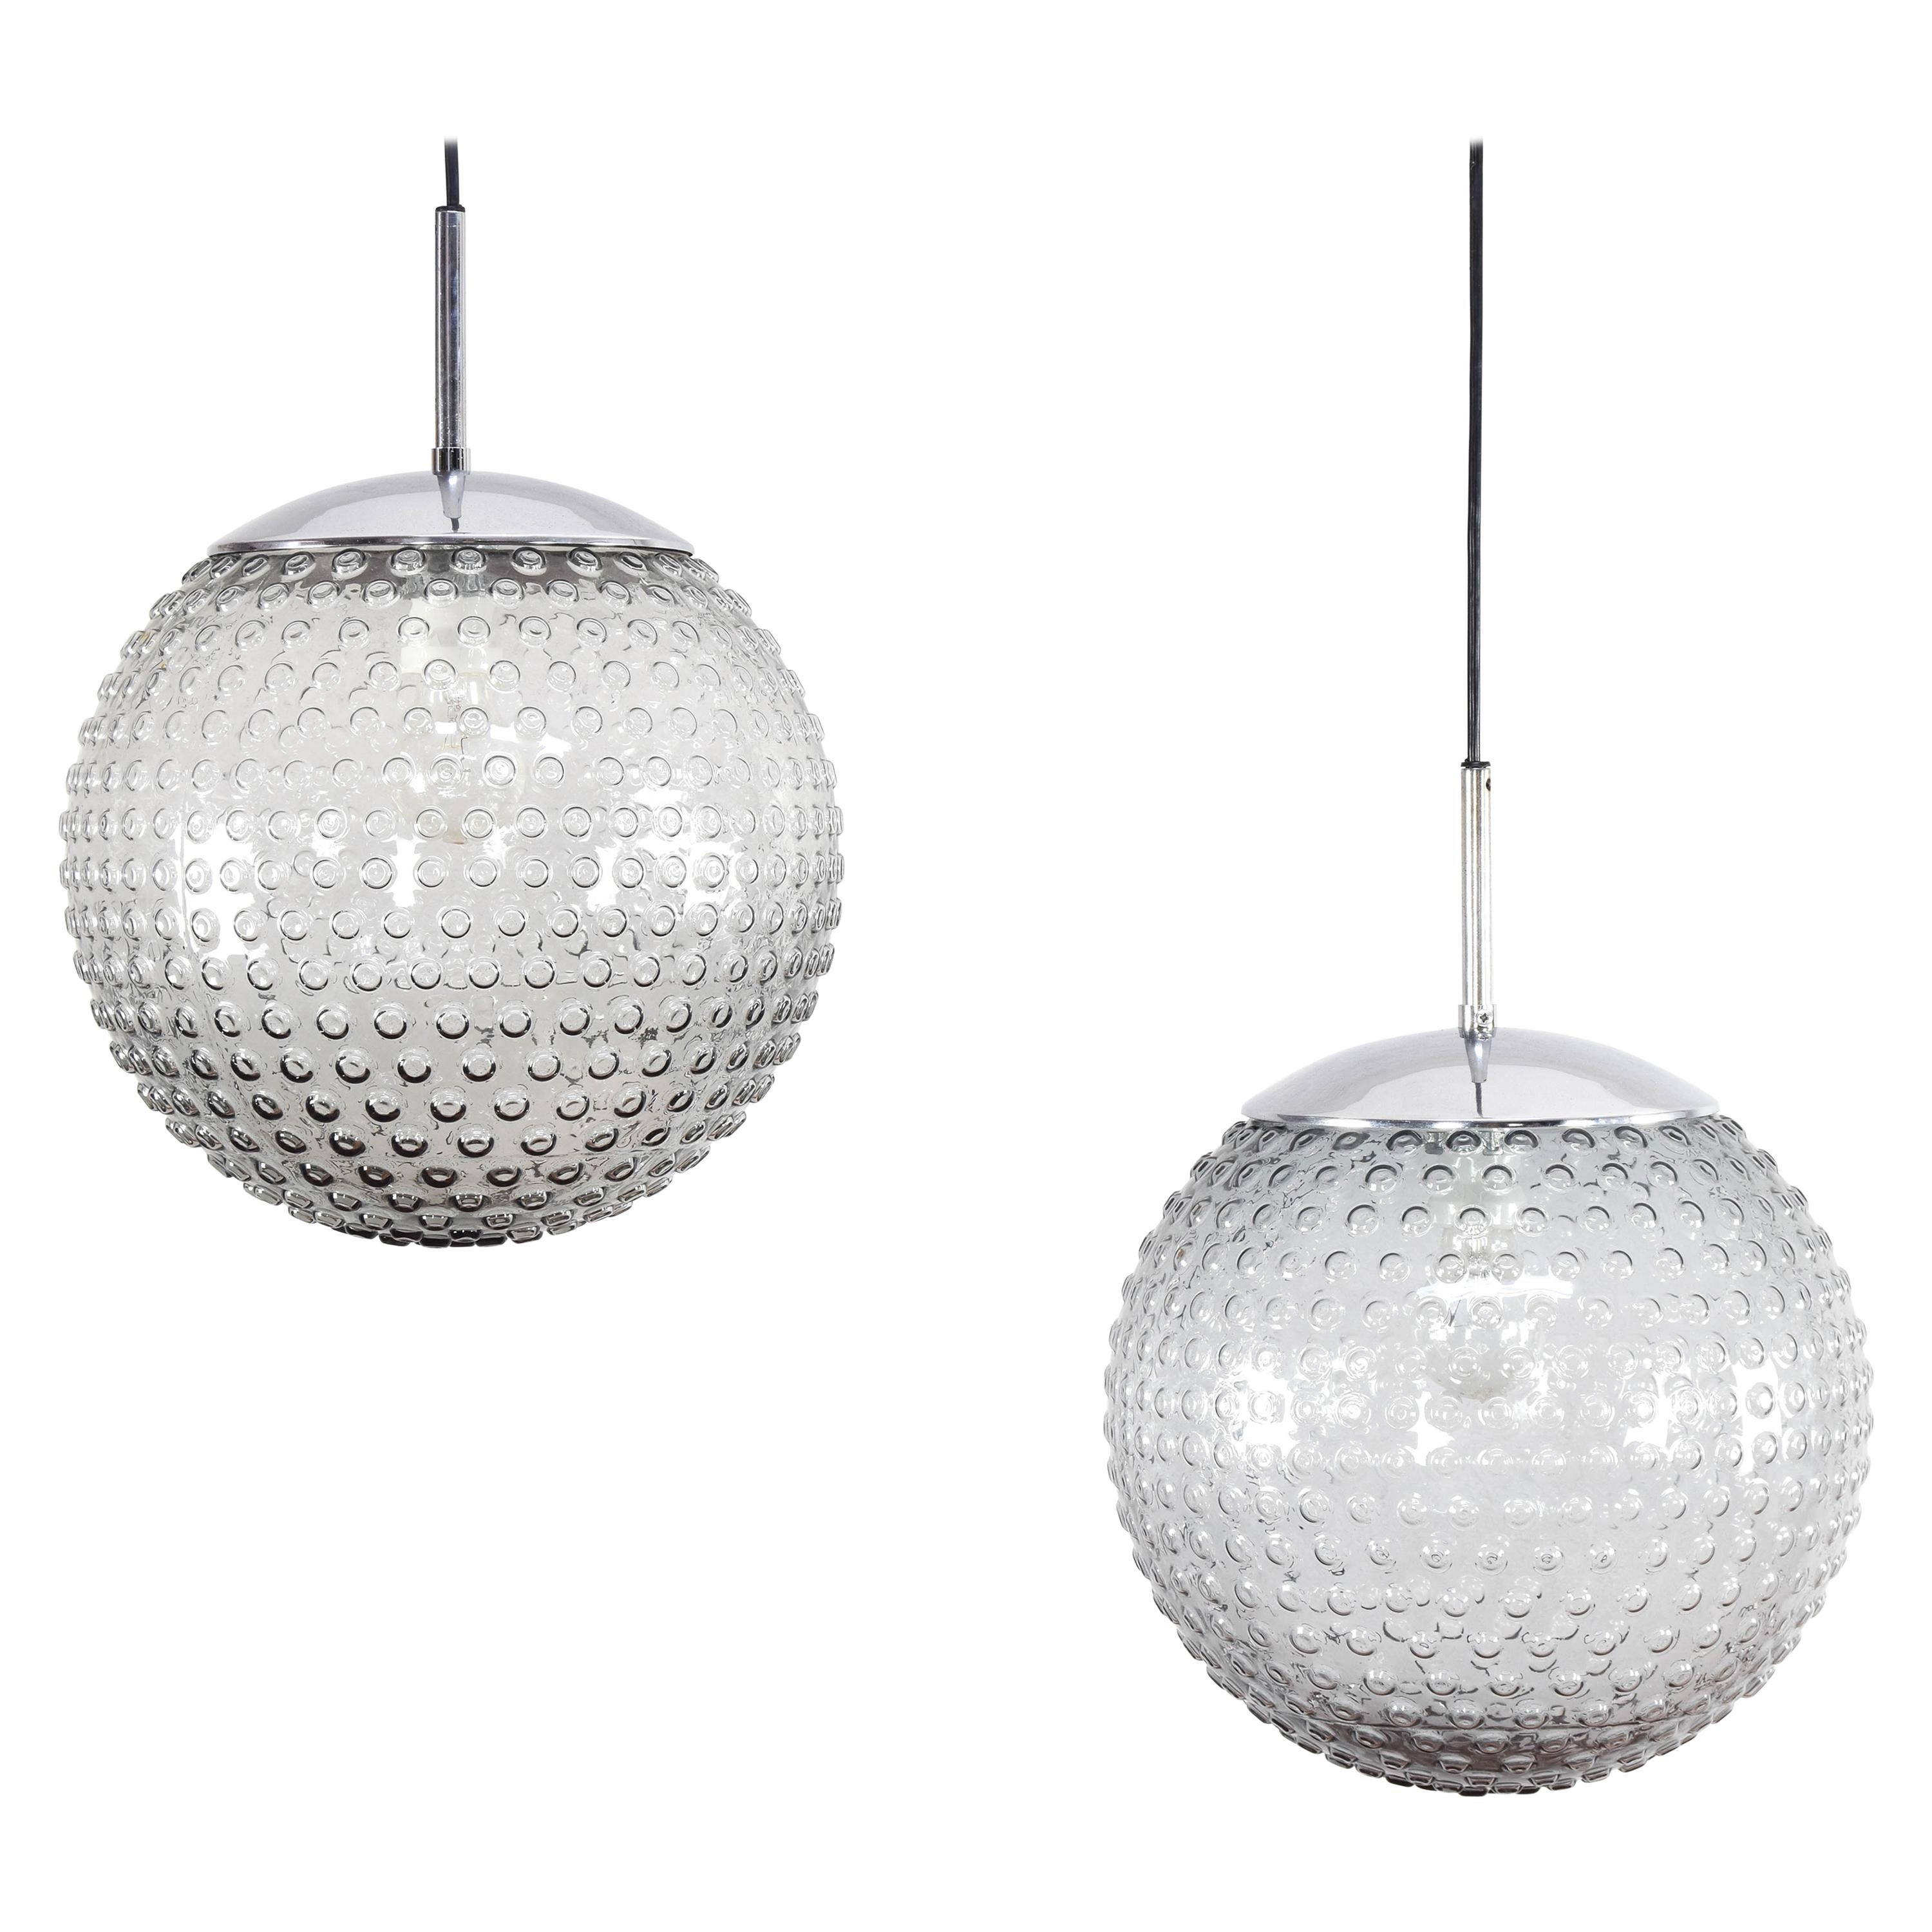 Staff Bubbles Glass Mid-Century Modern Pendant Lamps by Rolf Krüger, Germany 70s